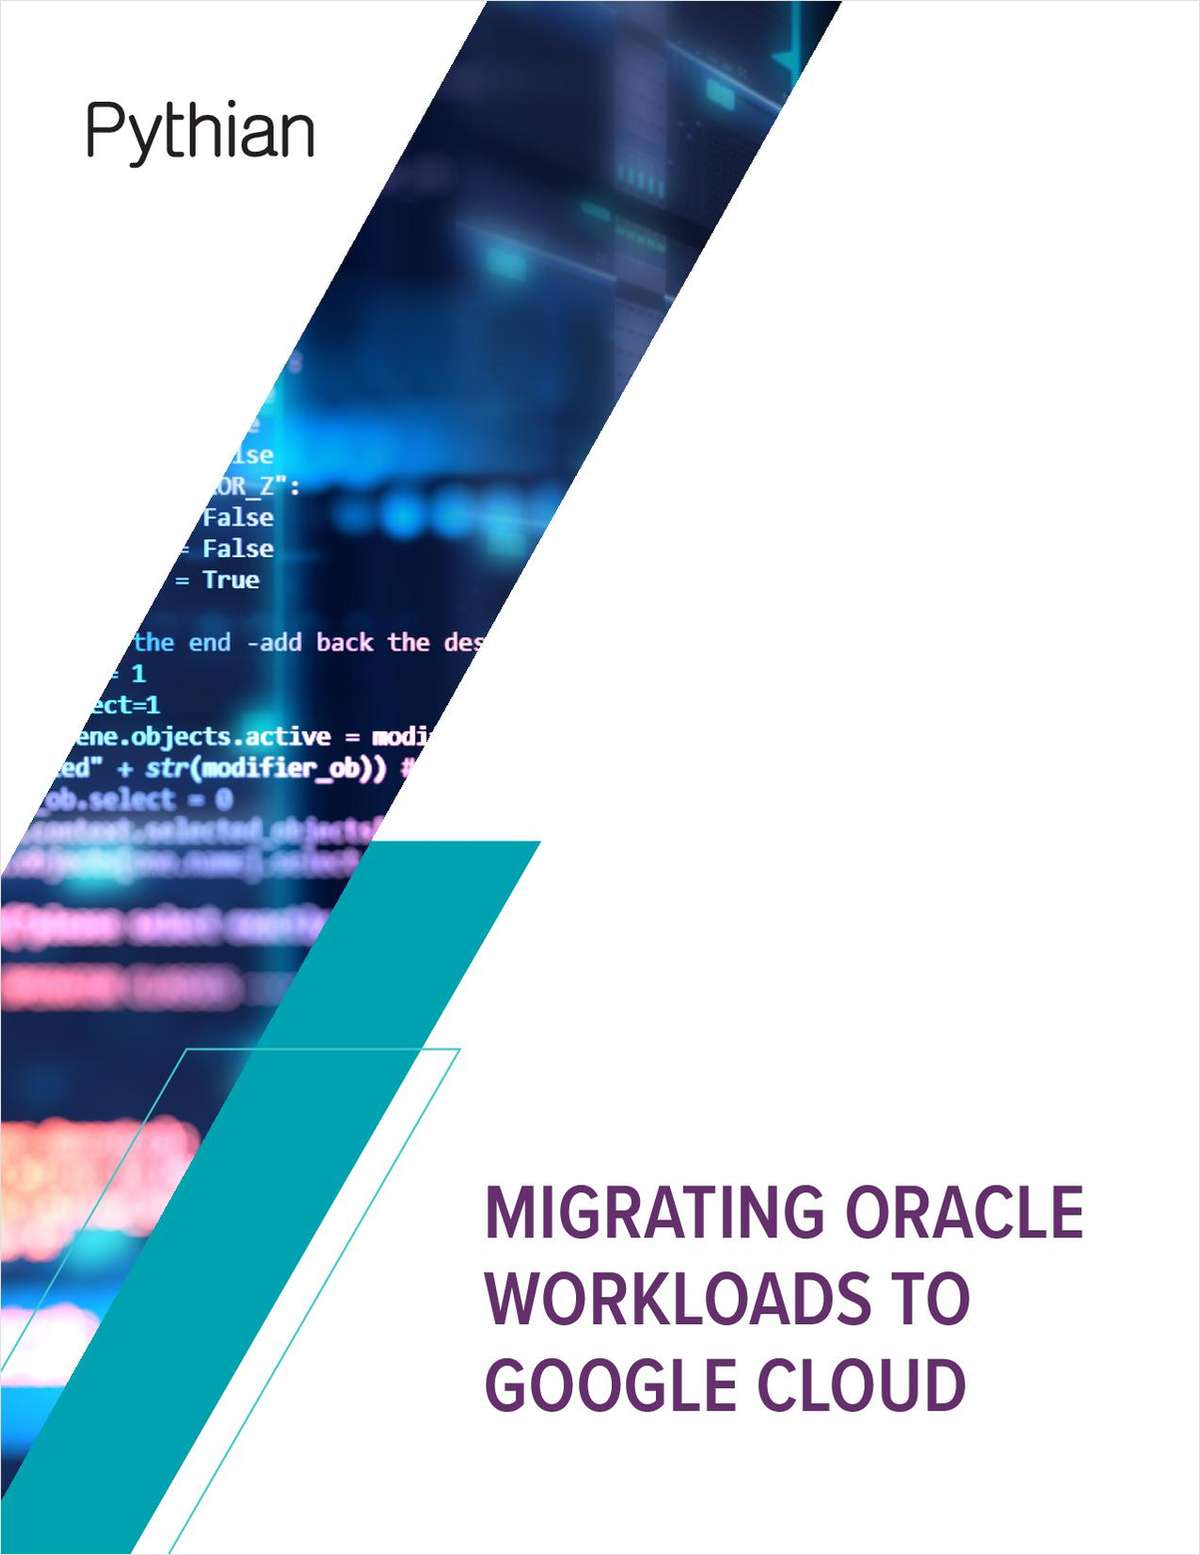 Migrating Oracle Workloads to Google Cloud